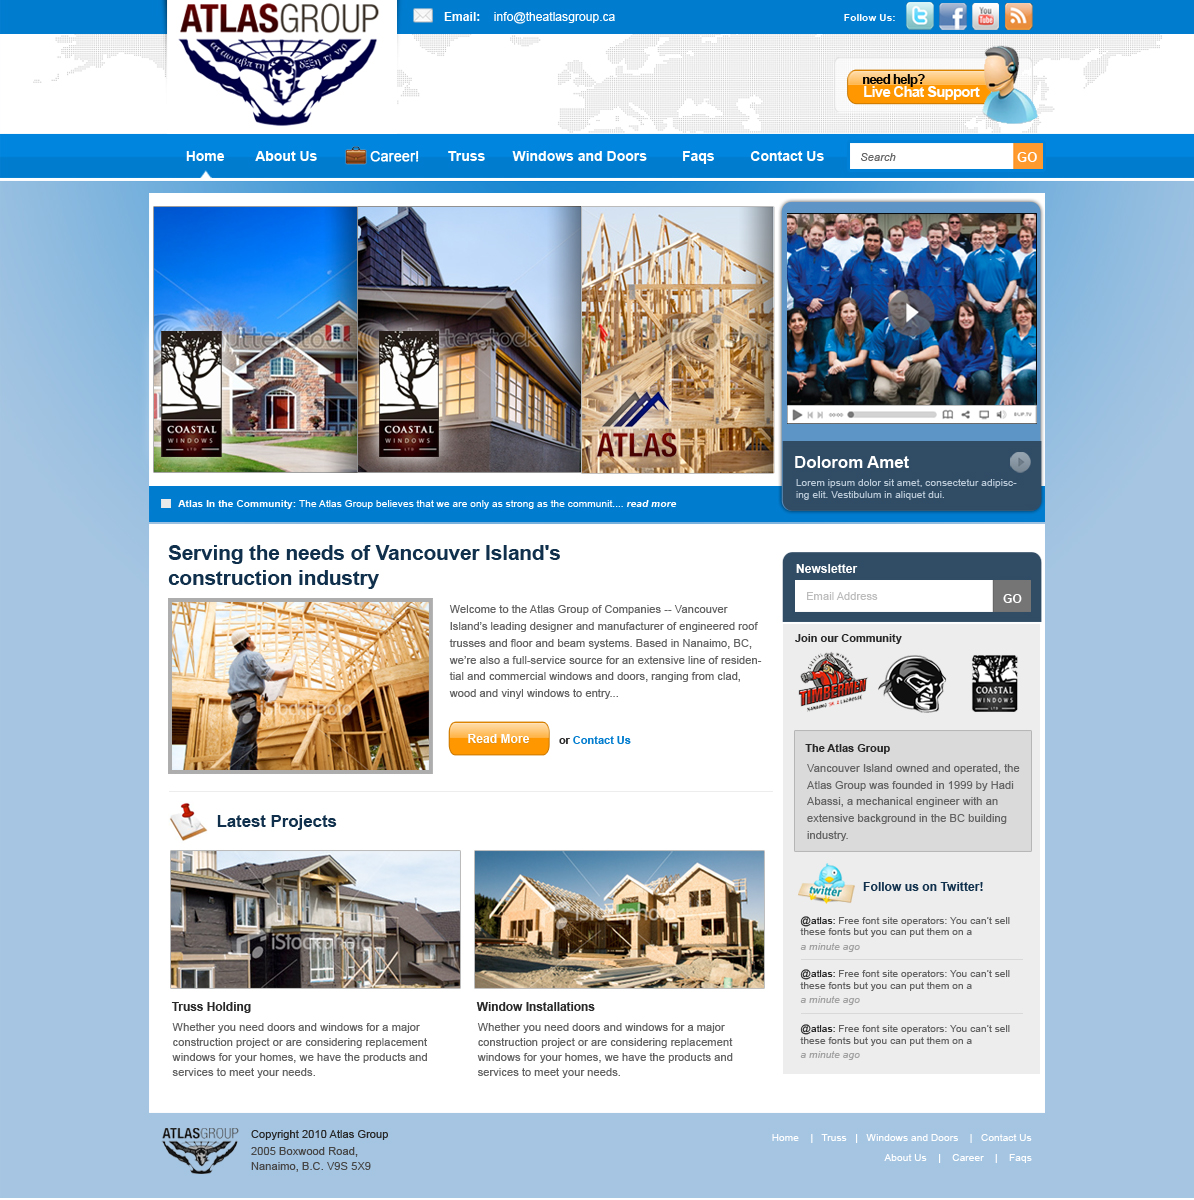 Web Page Design by rockpinoy - Entry No. 71 in the Web Page Design Contest The Atlas Group Website.